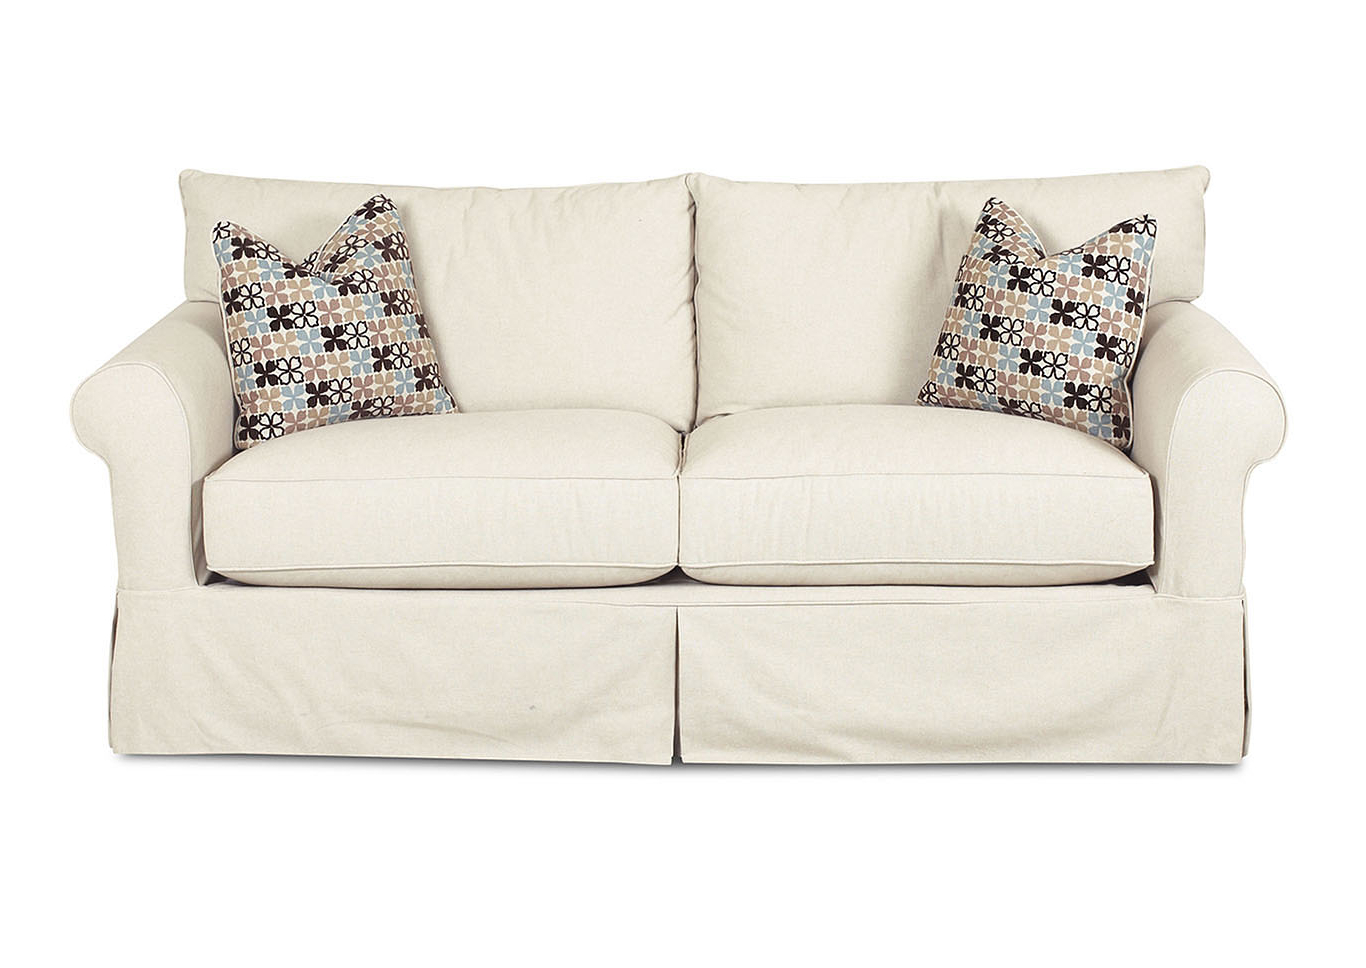 Furniture & More Galleries Jenny Beige Stationary Fabric Sofa With Fashionable Bristol Loveseats With Cushions (View 12 of 20)